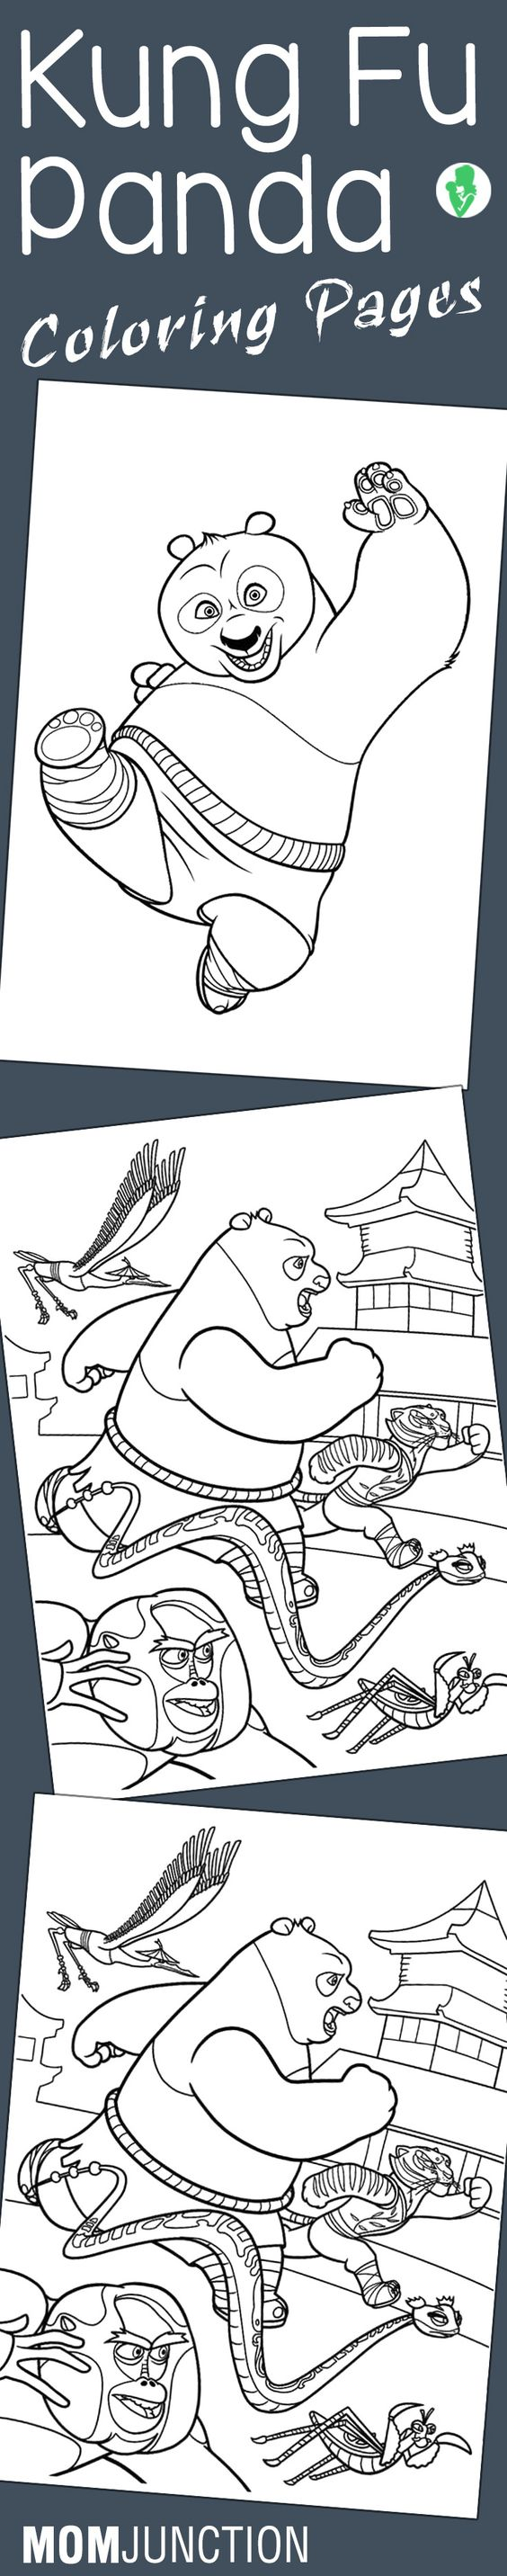 Bu buy colouring in books online - 10 Cute Kung Fu Panda Coloring Pages For Your Little Ones